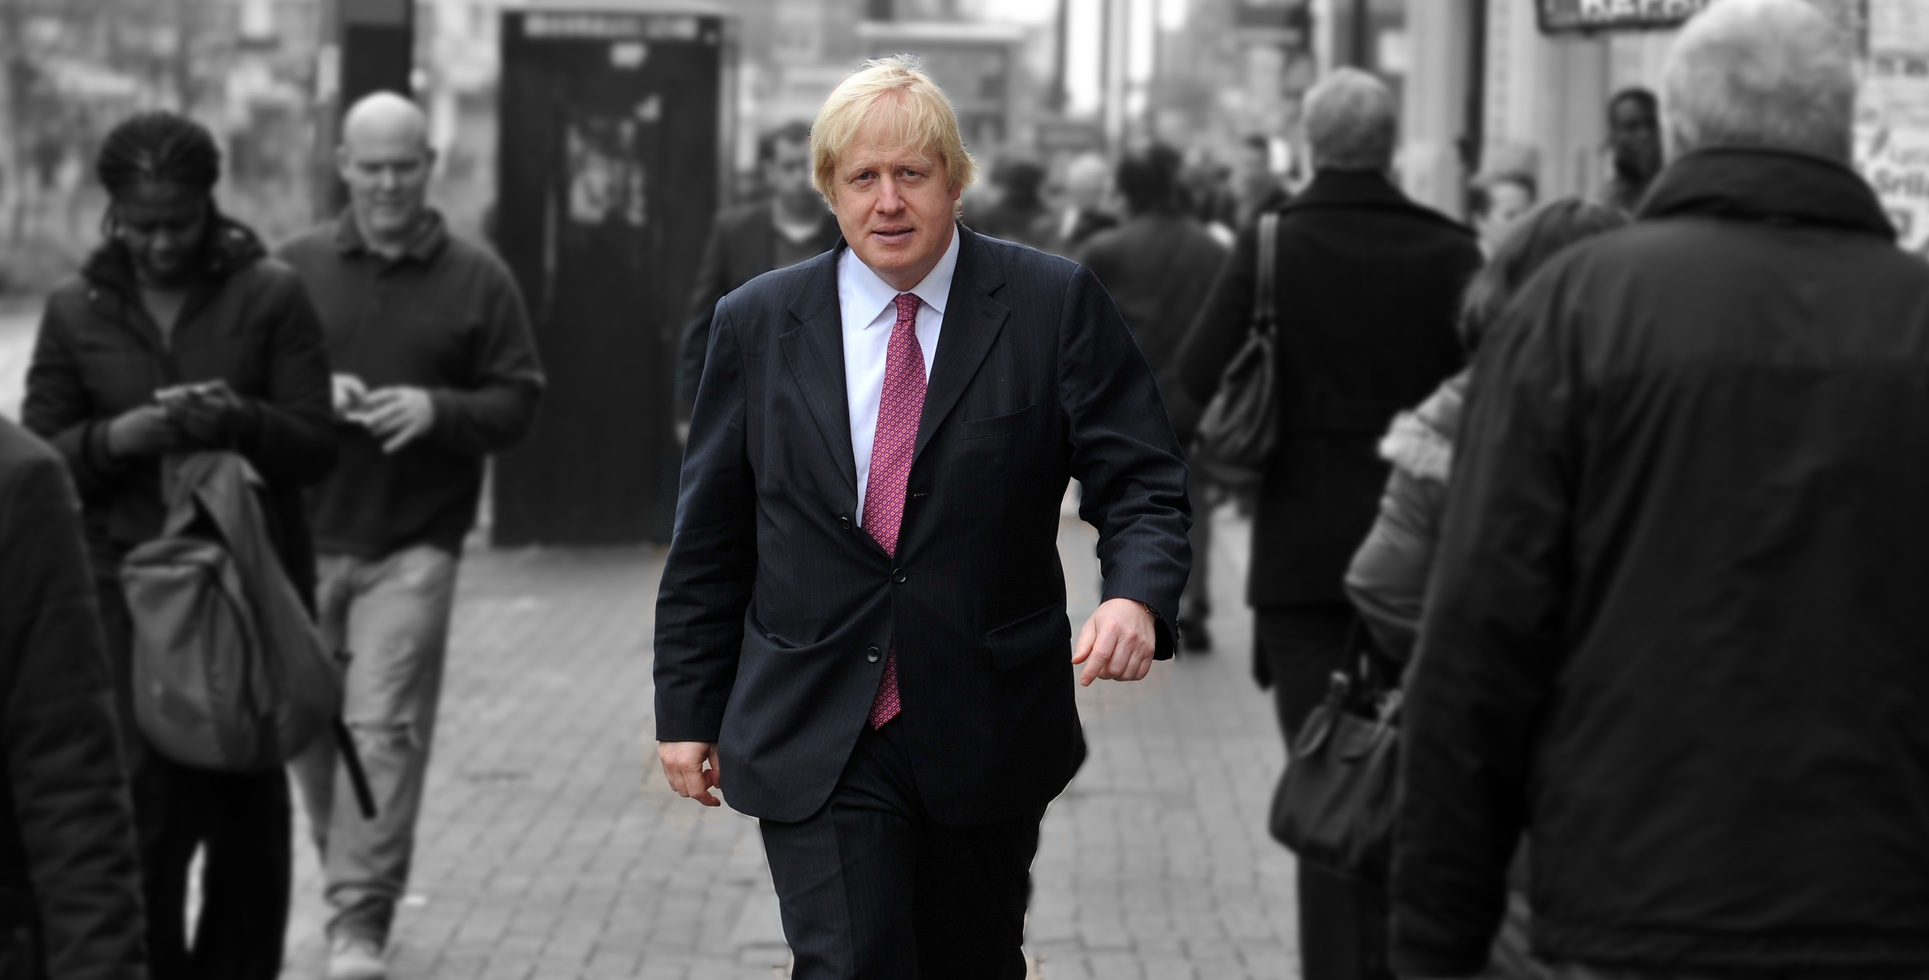 Britain remaining in the EU increases Boris Johnson's chances of being the next PM